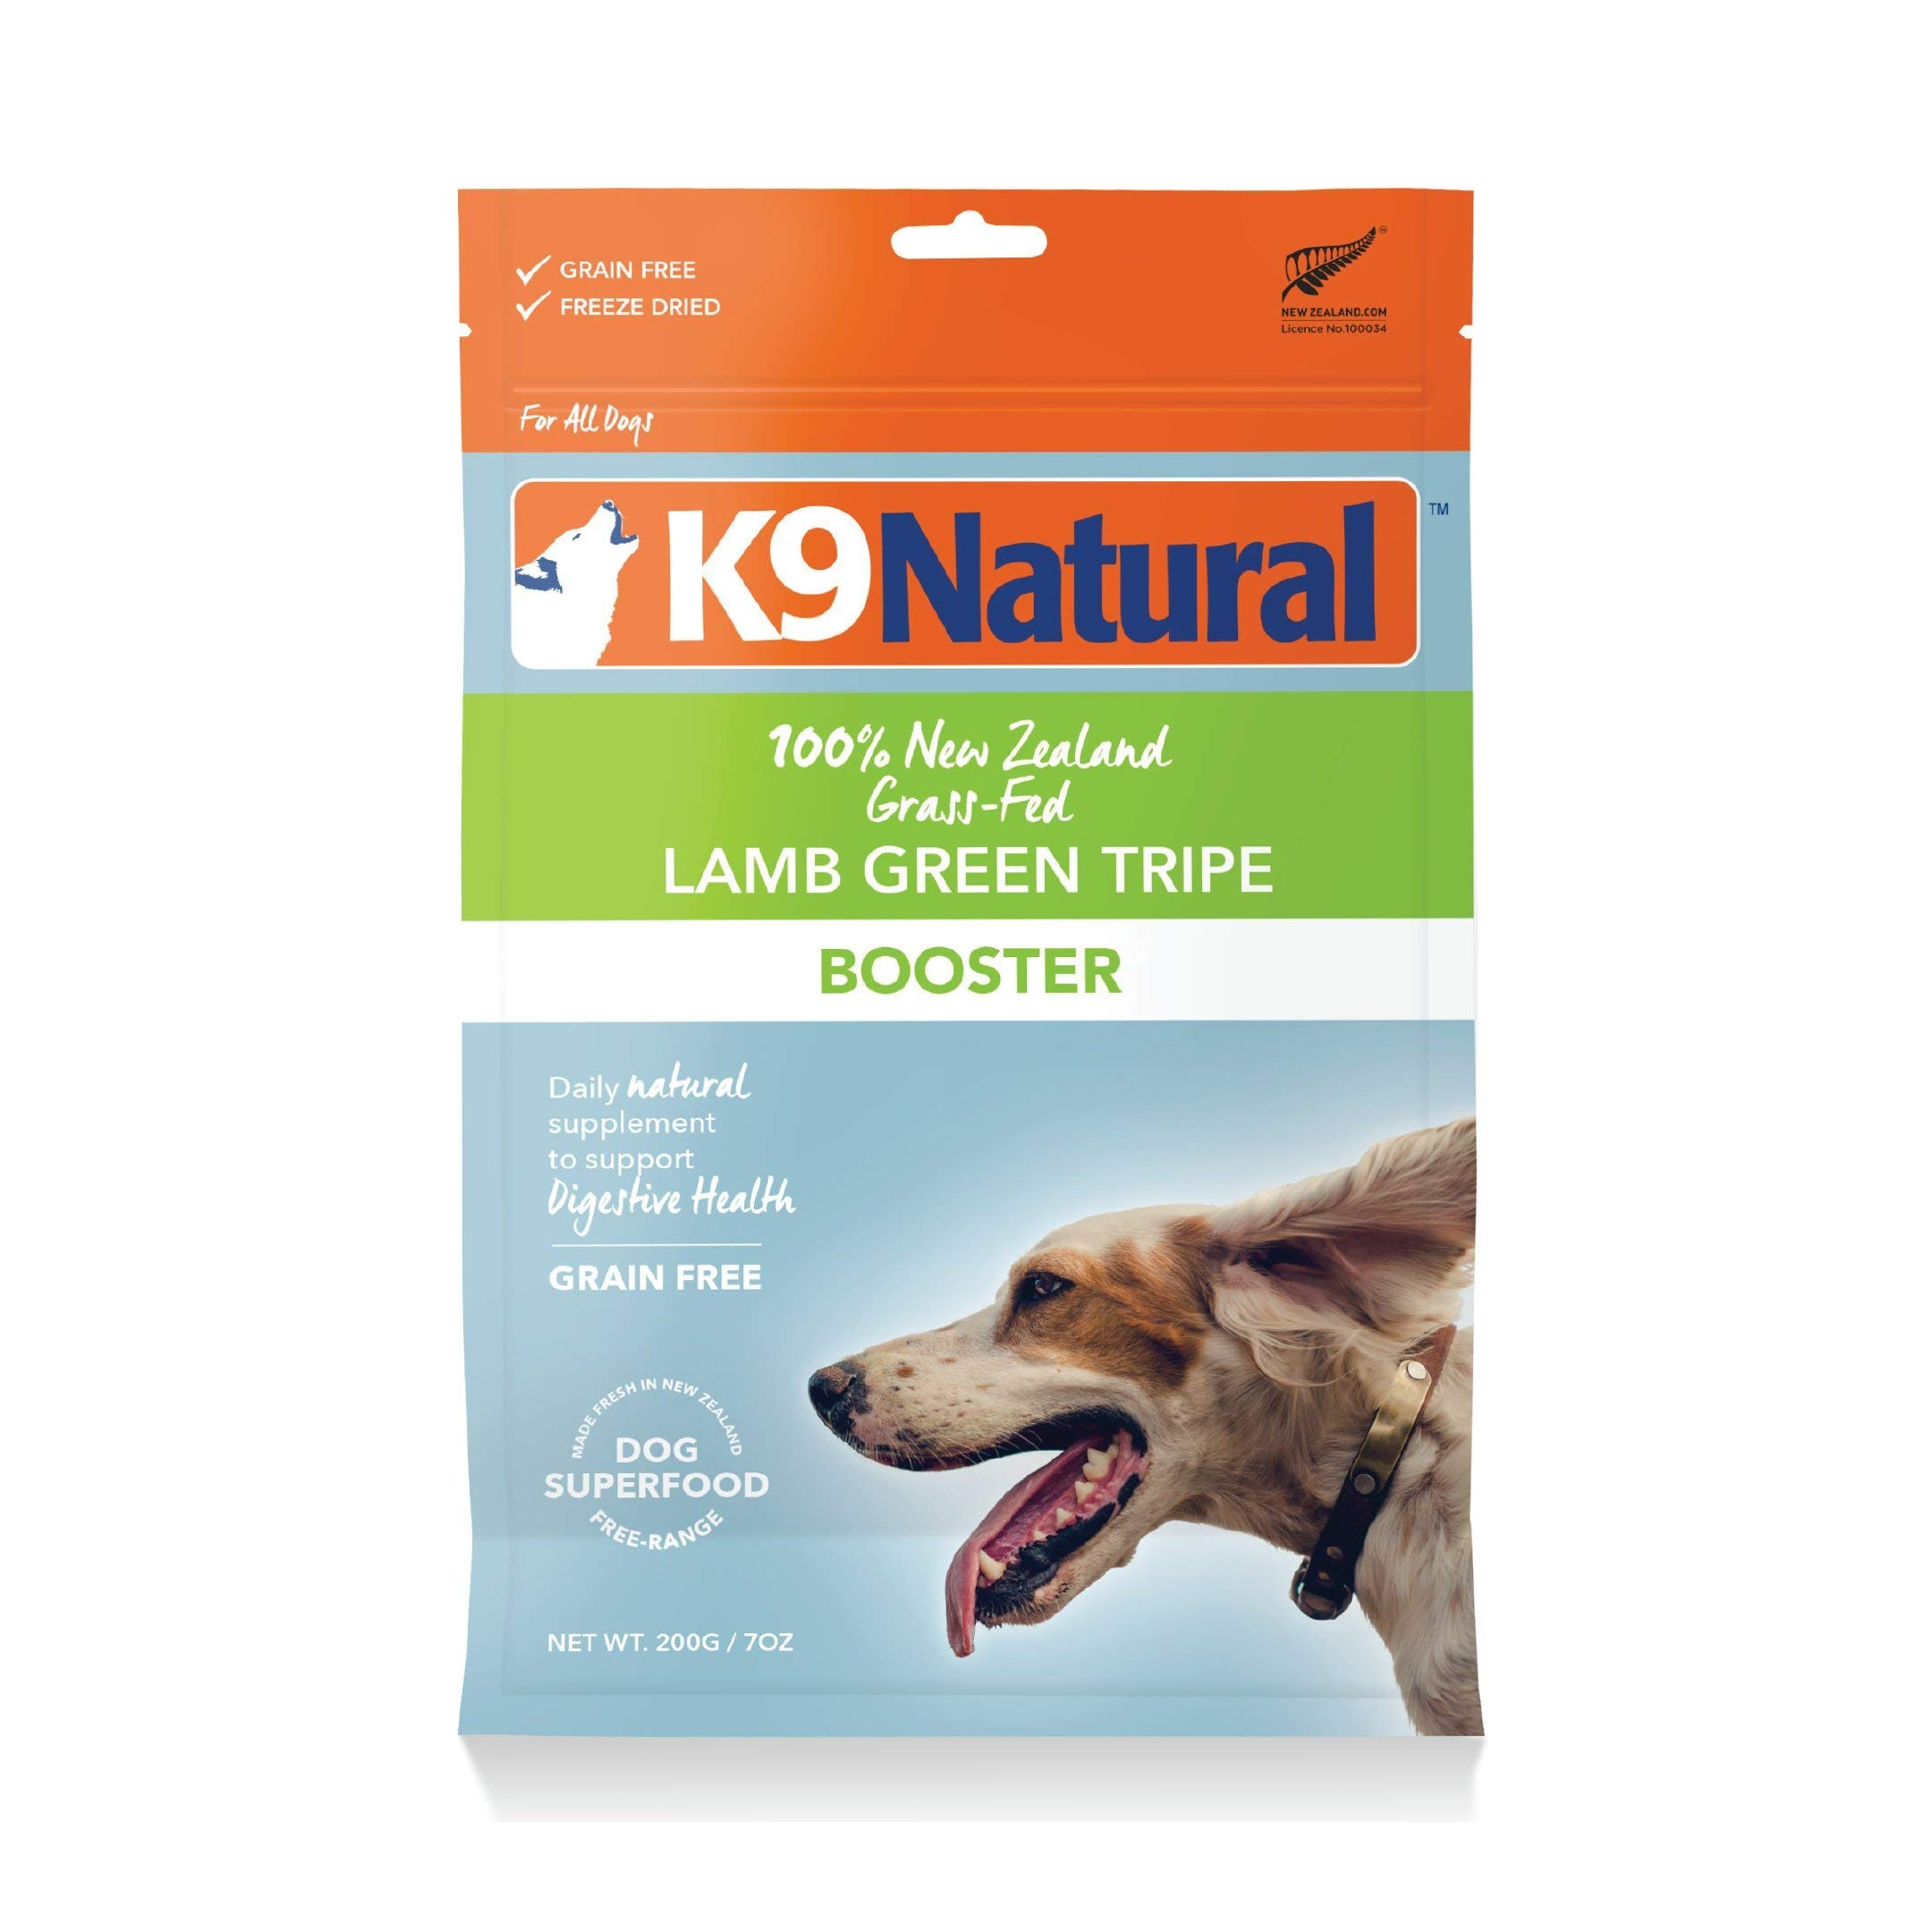 Freeze Dried Dog Food Booster By K9 Natural - Perfect Grain Free, Healthy, Hypoallergenic Limited Ingredients For All Dogs - Raw, Freeze Dried Mixer - 100% Green Tripe Nutrition For Dogs - 7Oz Pack by K9 Natural